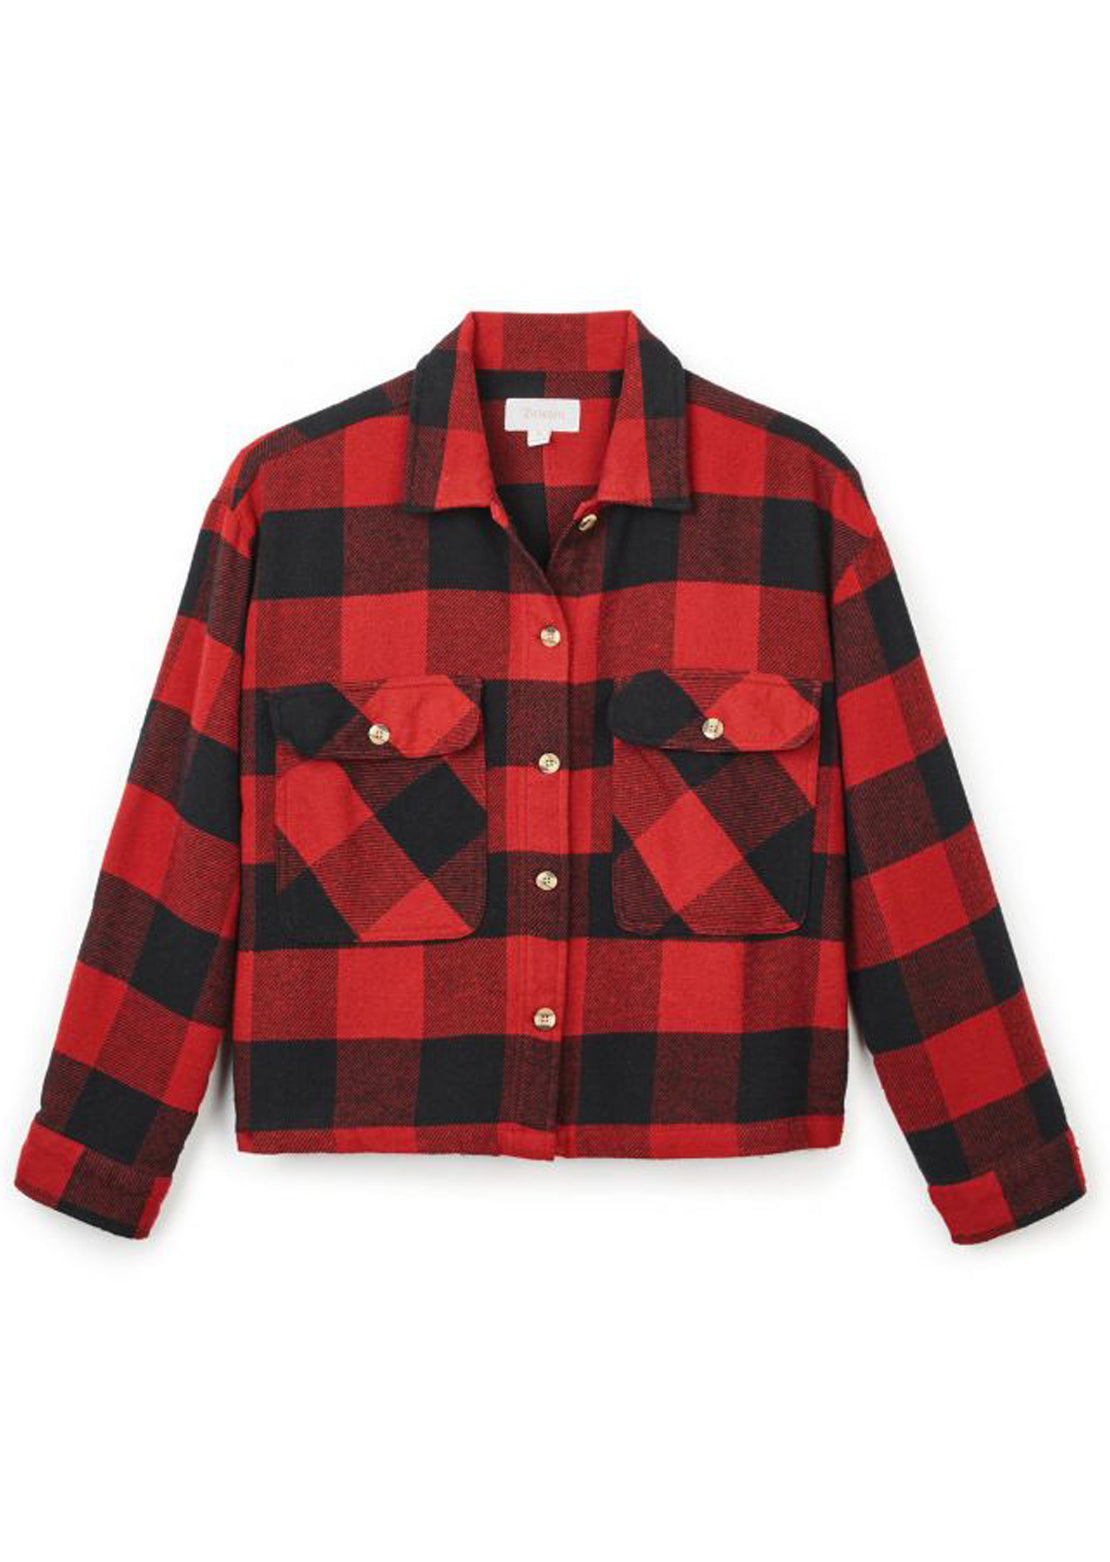 Brixton Women's Astoria Longsleeve Flannel Button Up Shirt Cardinal